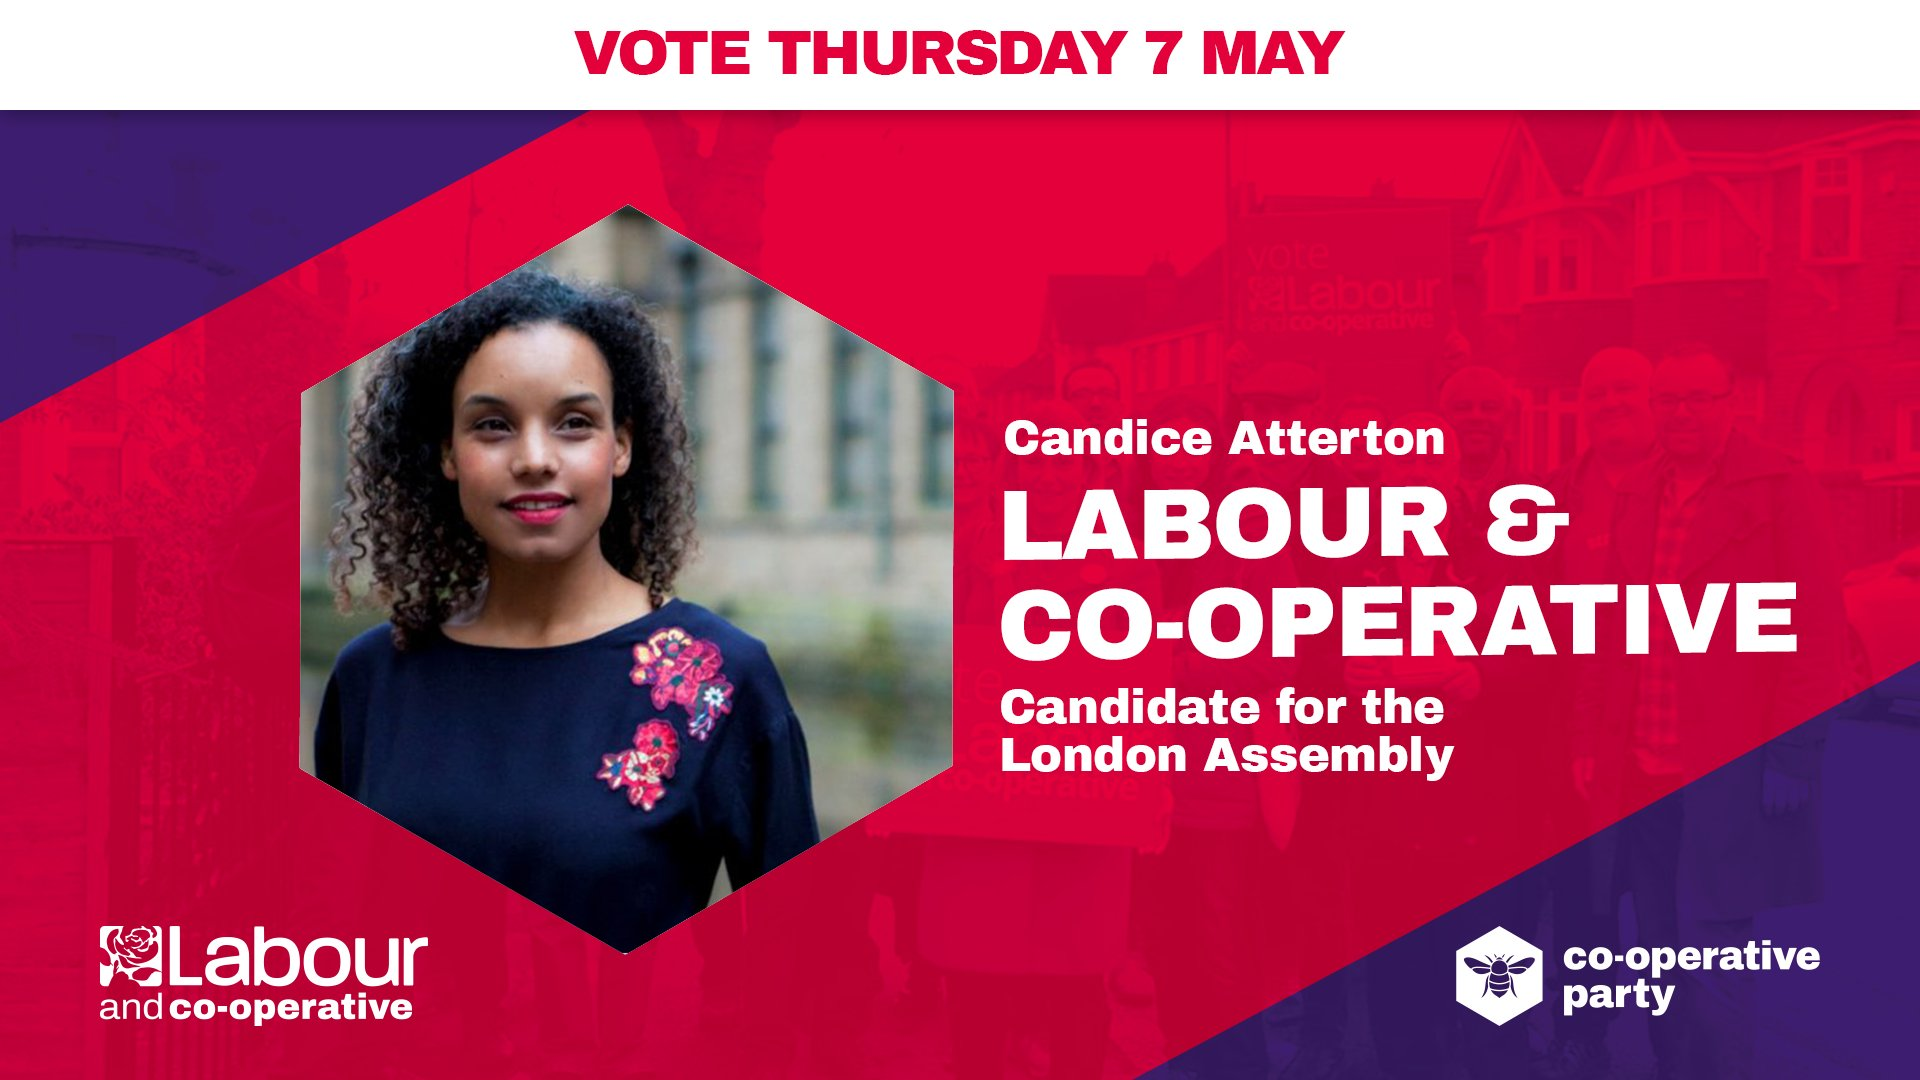 <p>Hi my name is Candice Atterton. I am the Labour London Assembly candidate for the South West. I am delighted to have been selected by Labour members from Feltham & Heston, Brentford & Isleworth, Twickenham, Kingston & Surbiton and Richmond Park constituency labour parties and endorsed by the Cooperative Party […]</p>